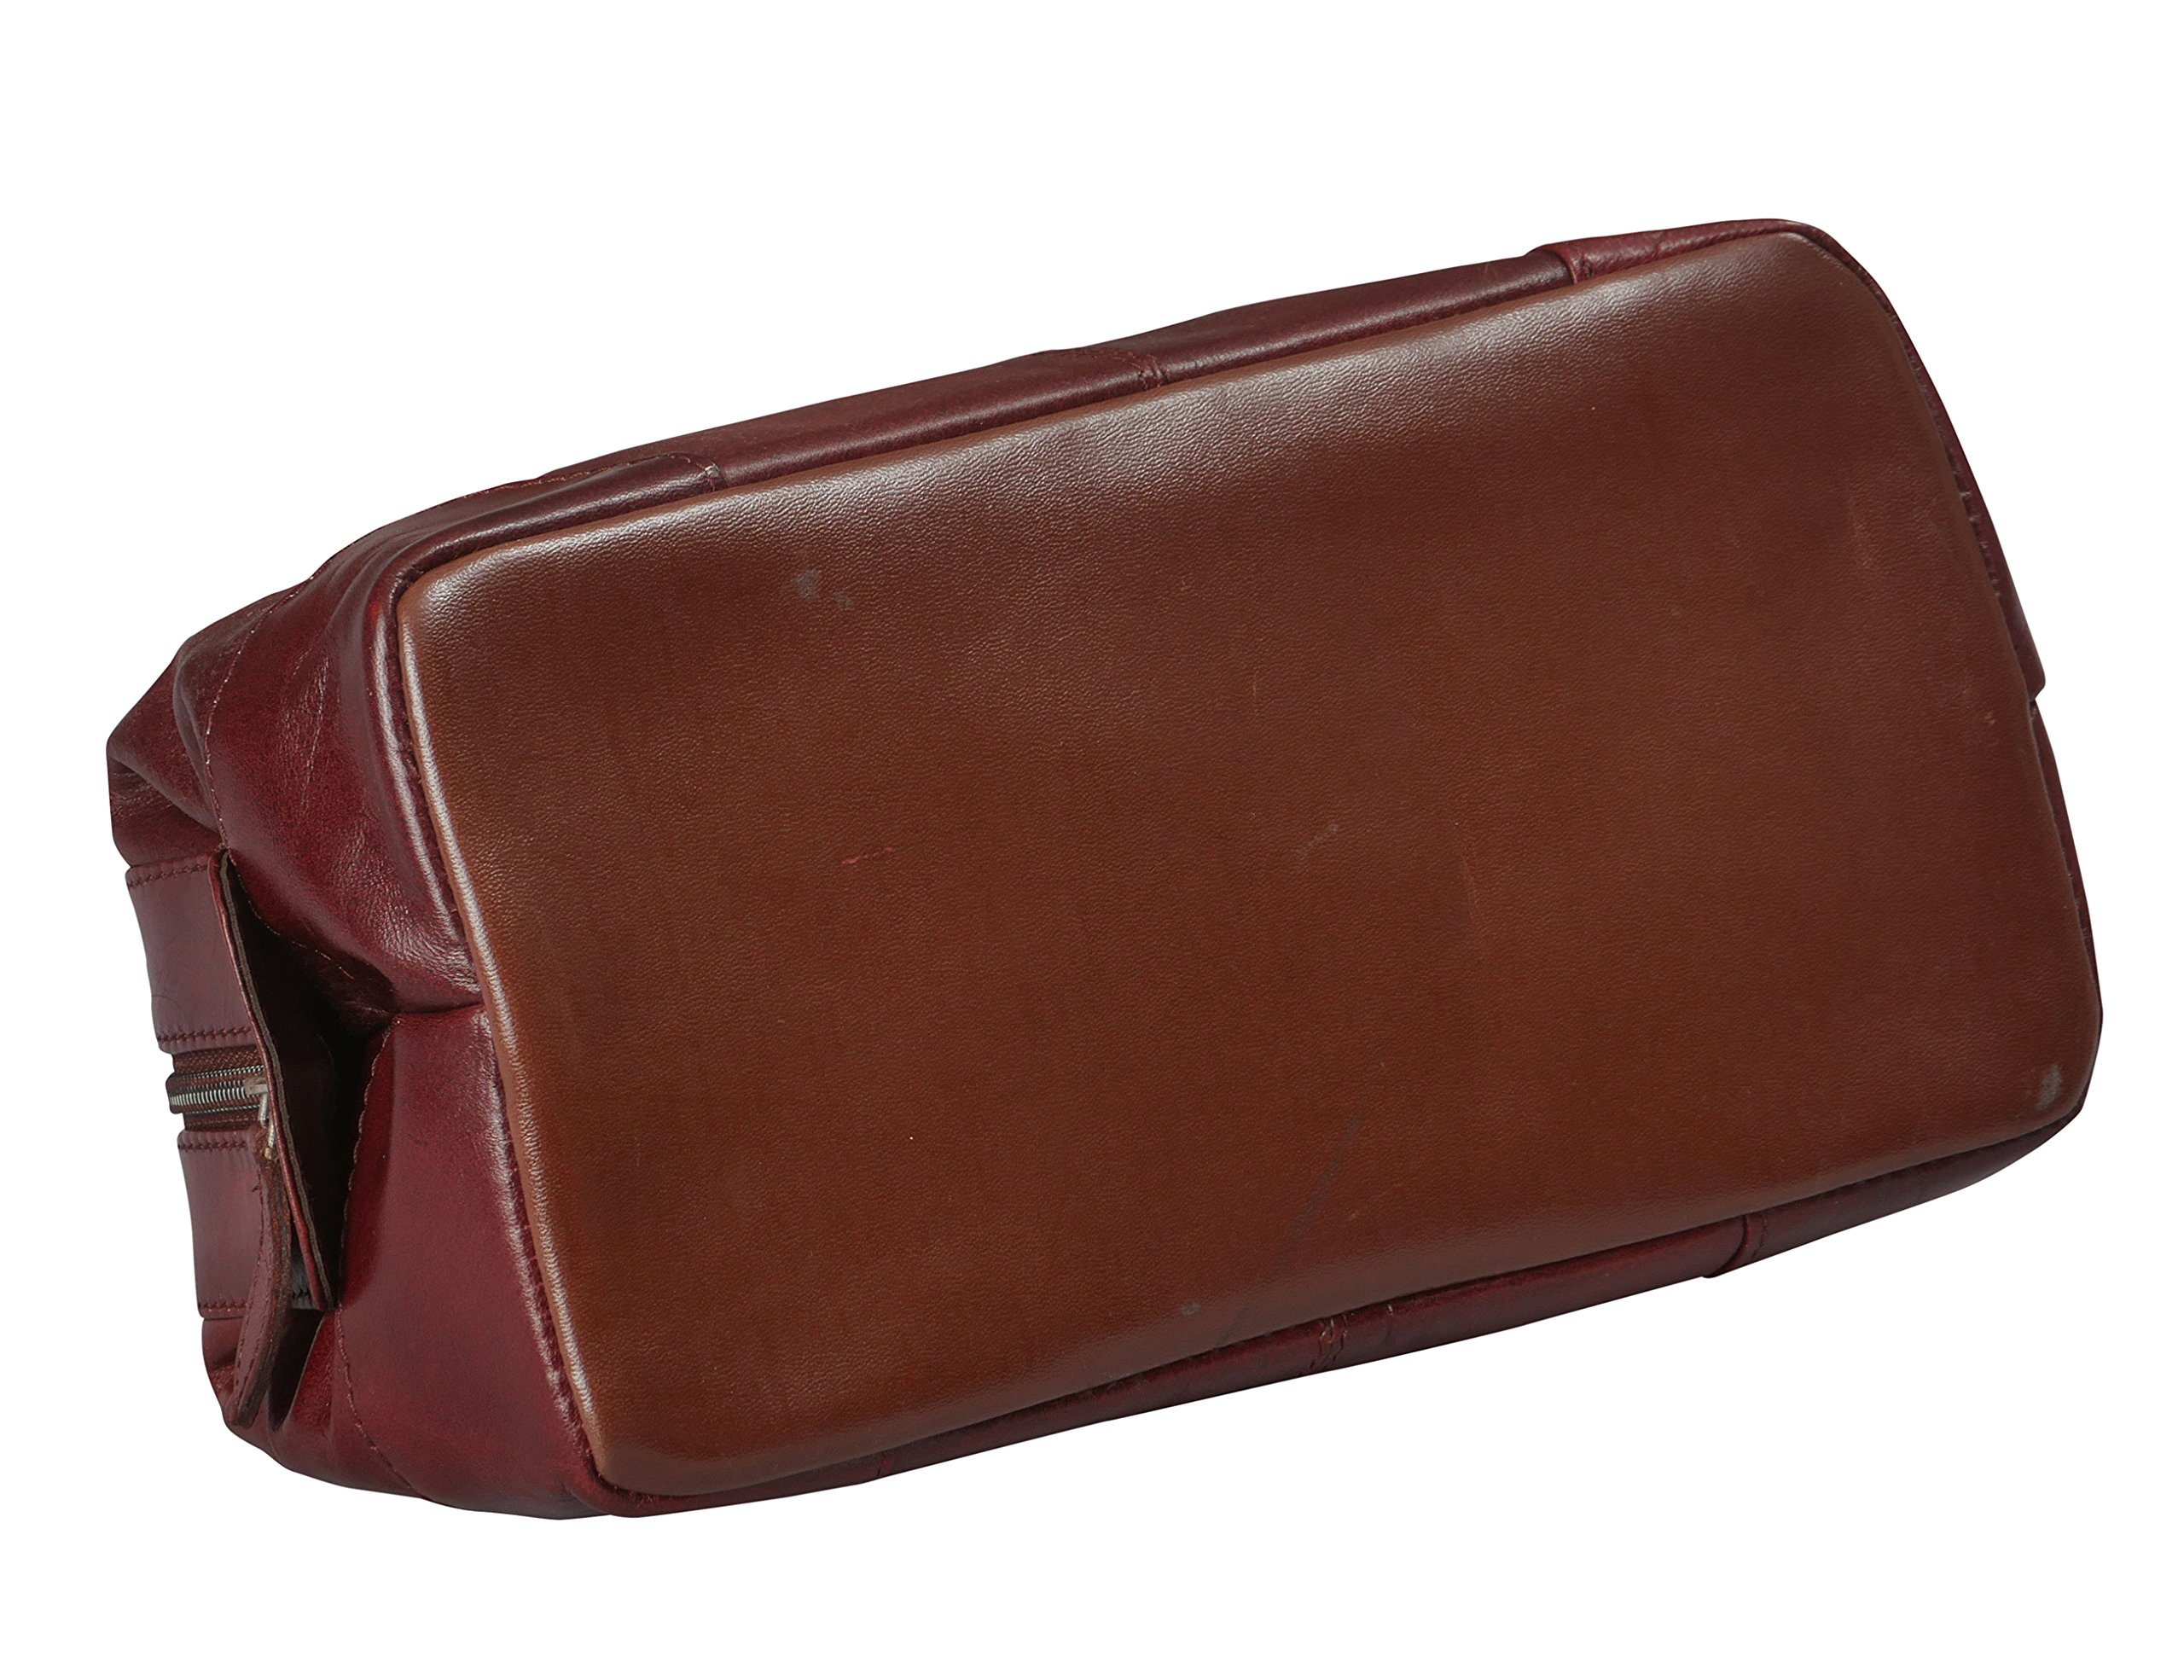 9838a1f306e Mens Toiletry Bag Dopp Kit by Bayfeild Bags-Leather Vintage Shave Kit Travel    Medicine Bag (10x5x5) (burgandy) Health and Beauty